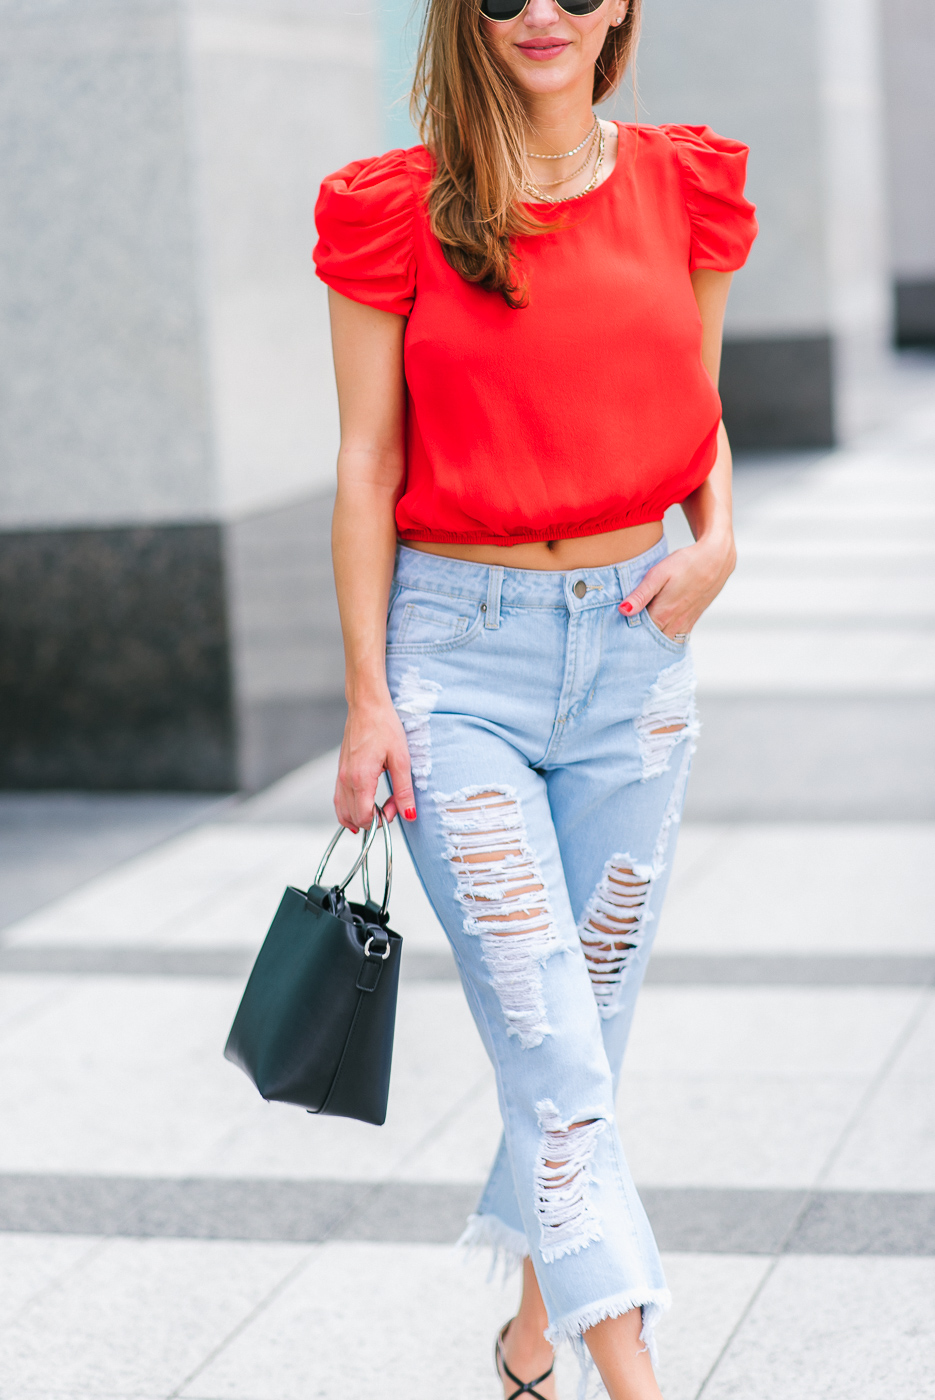 Street style fashion blogger in bright red top with capped ruffle sleeves